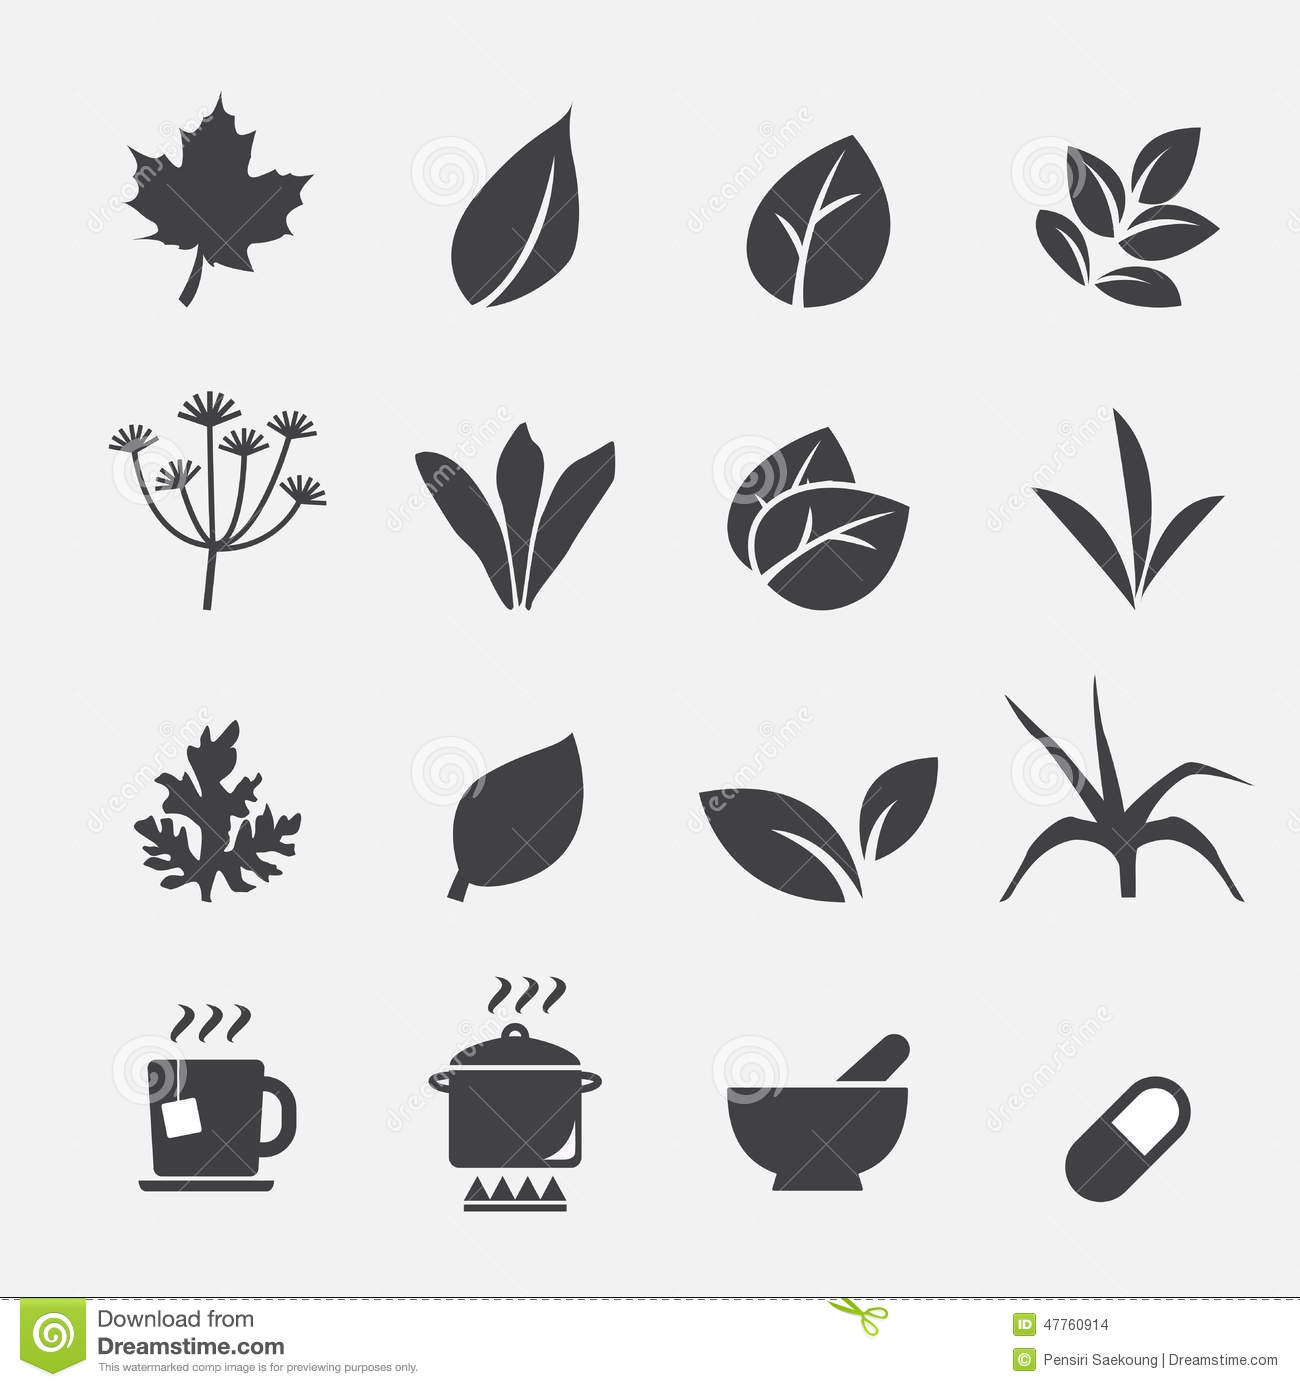 Vector Illustration Web Designs: Herb Icon Stock Vector. Image Of Herbs, Aloe, Isolated